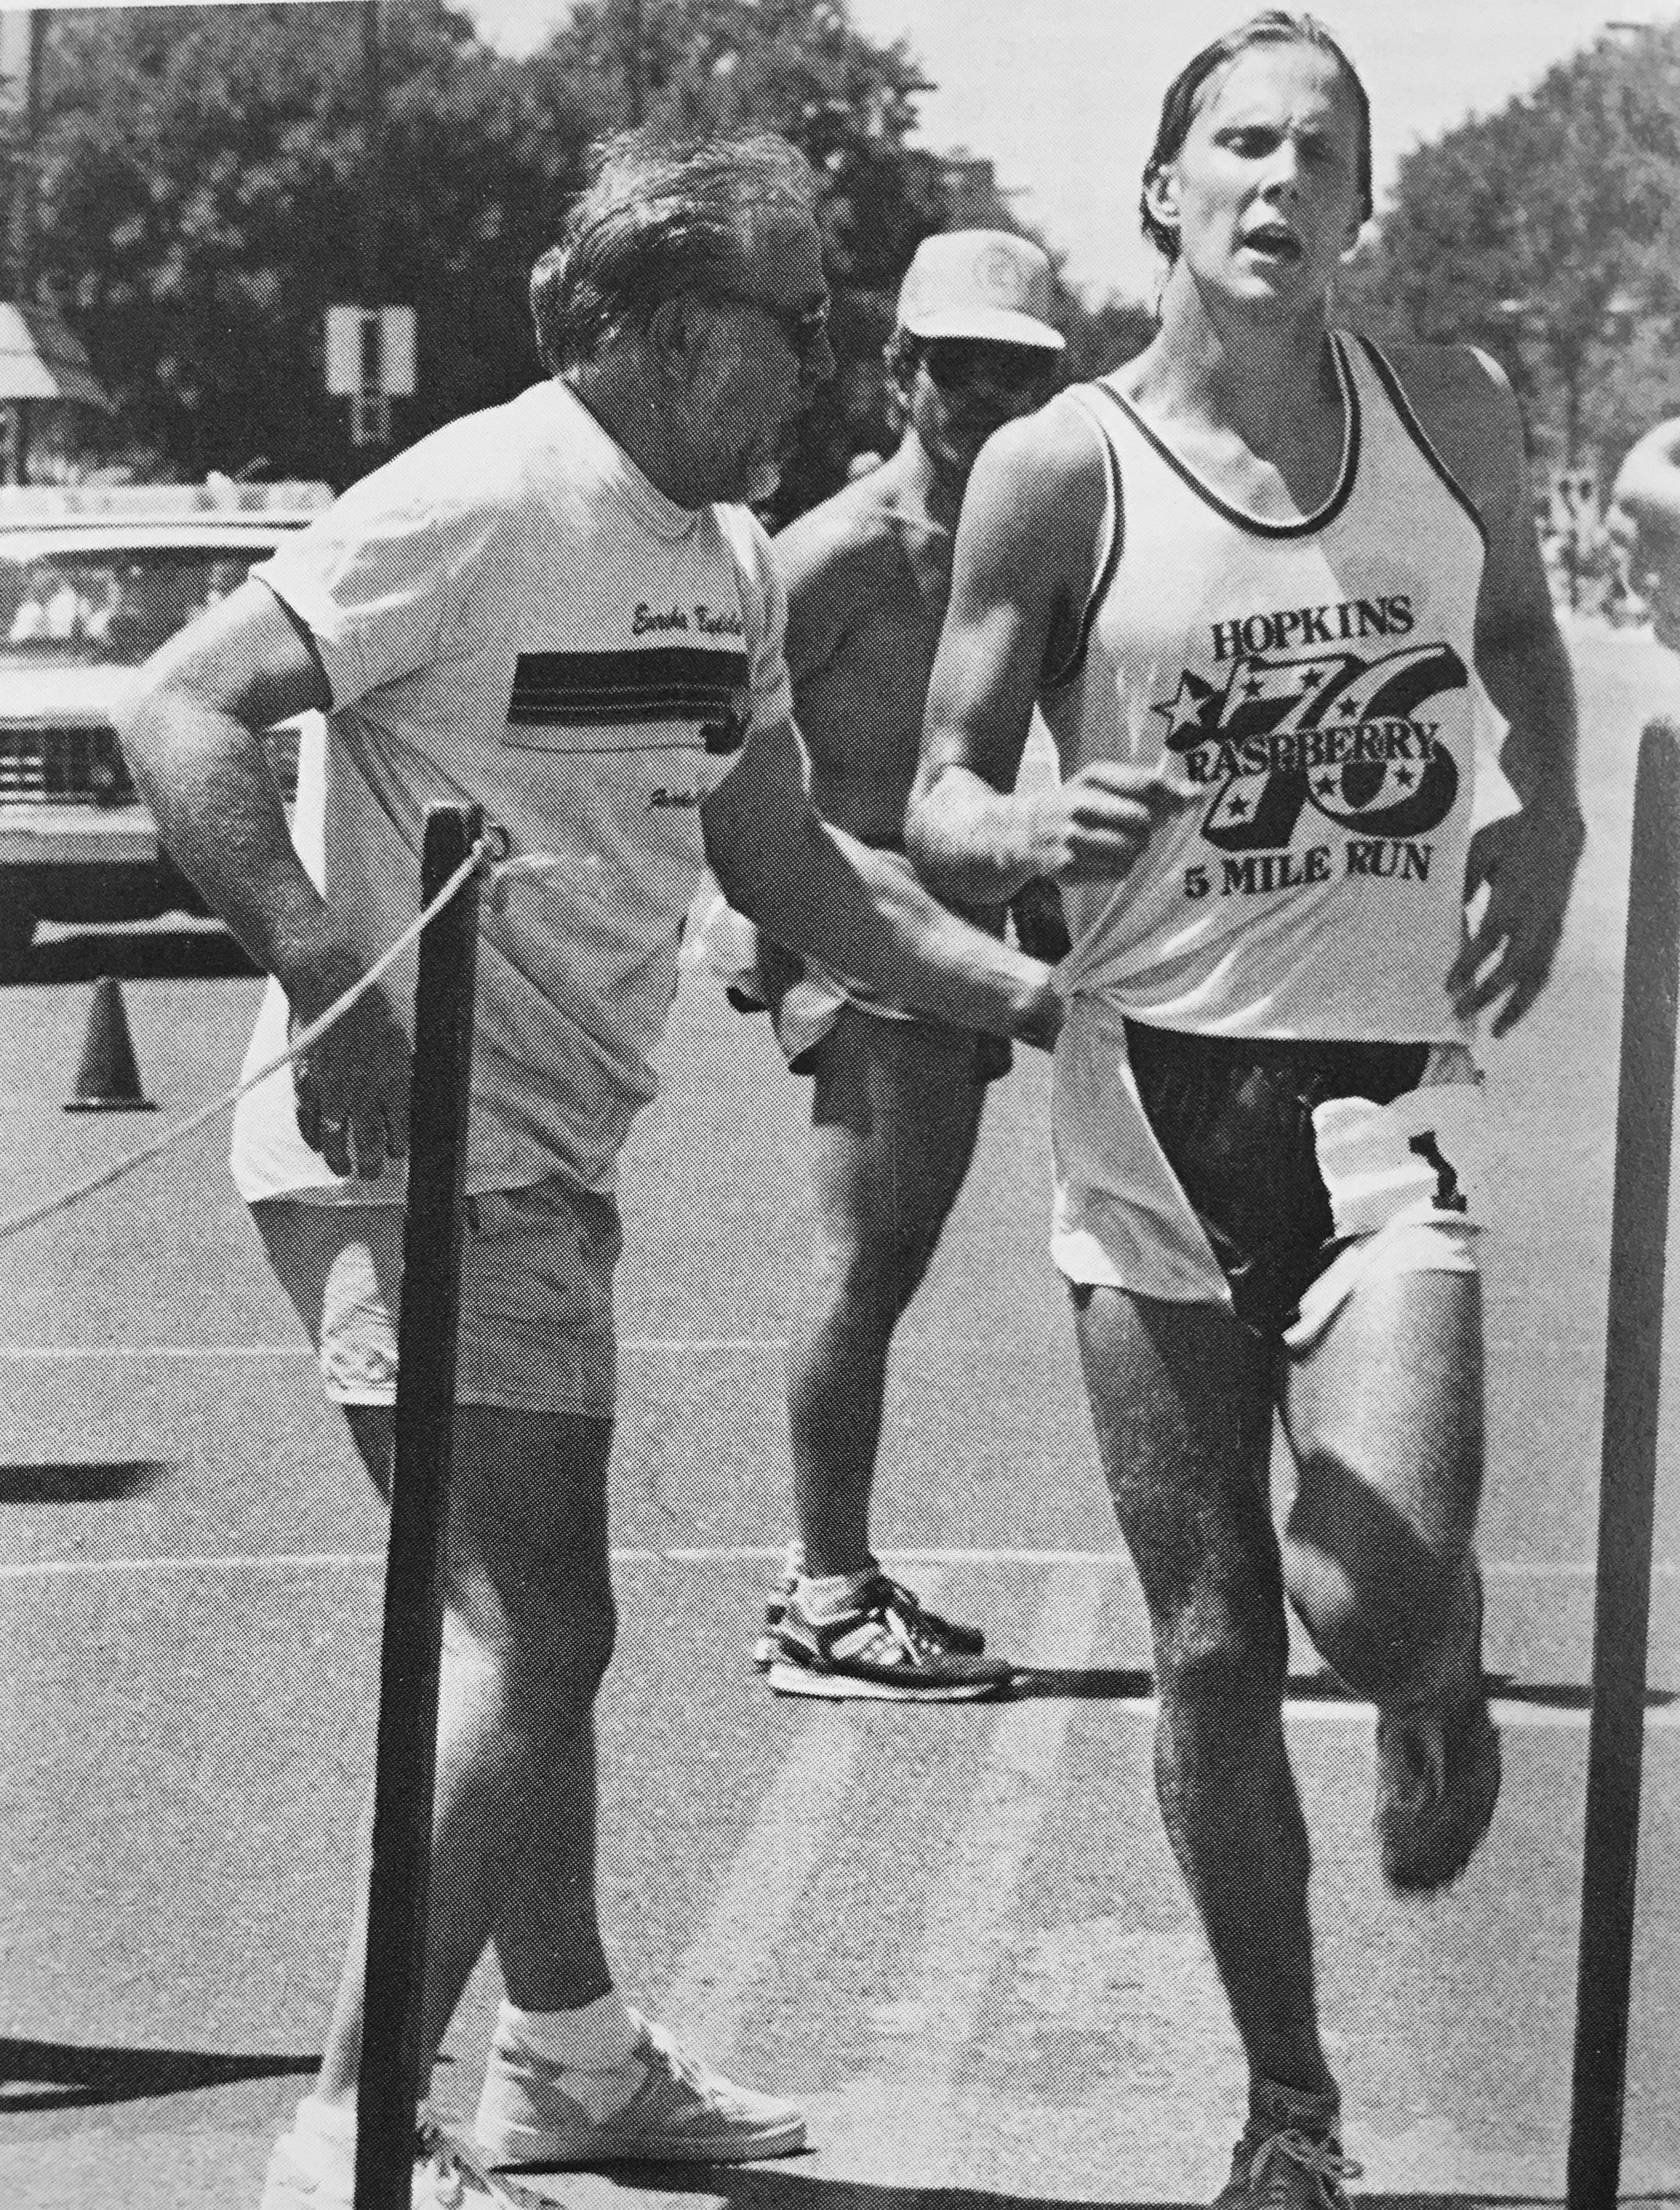 Future Olympian Bob Kempainen as the 21-year old champion of the 1987 Hopkins Raspberry Run. (Photo by Dennis Hahn)